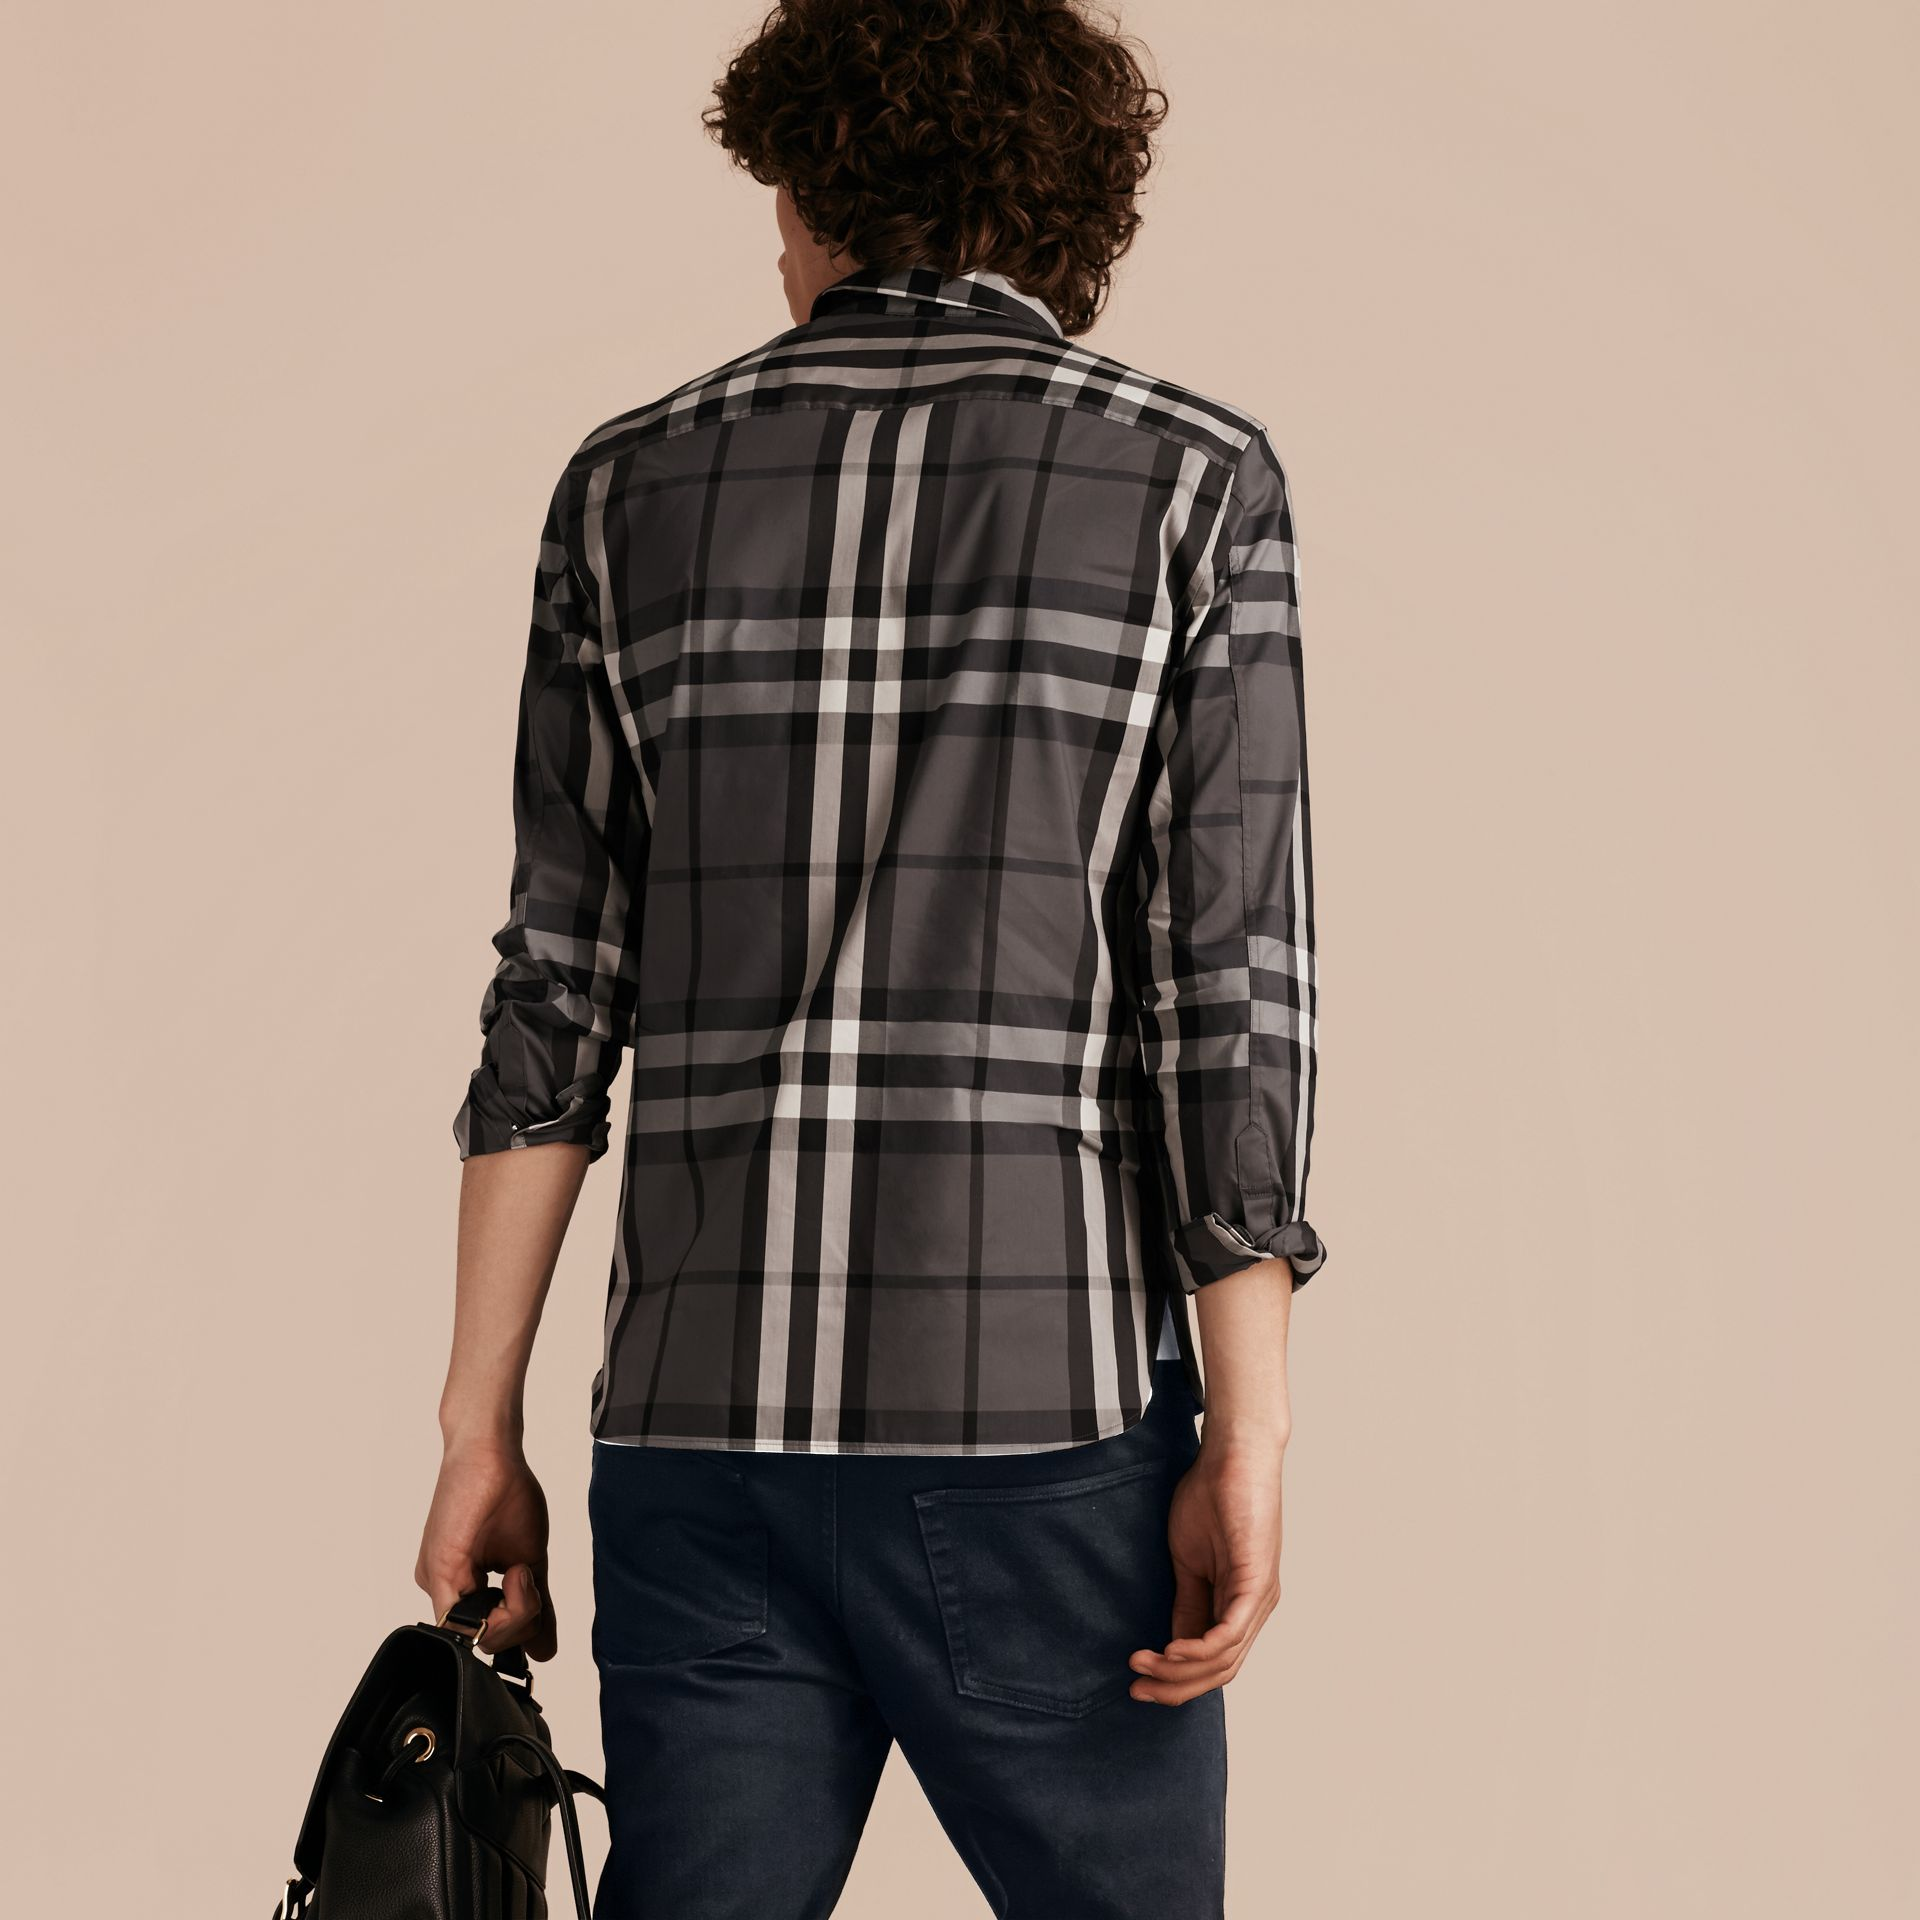 Charcoal Check Stretch Cotton Shirt Charcoal - gallery image 3